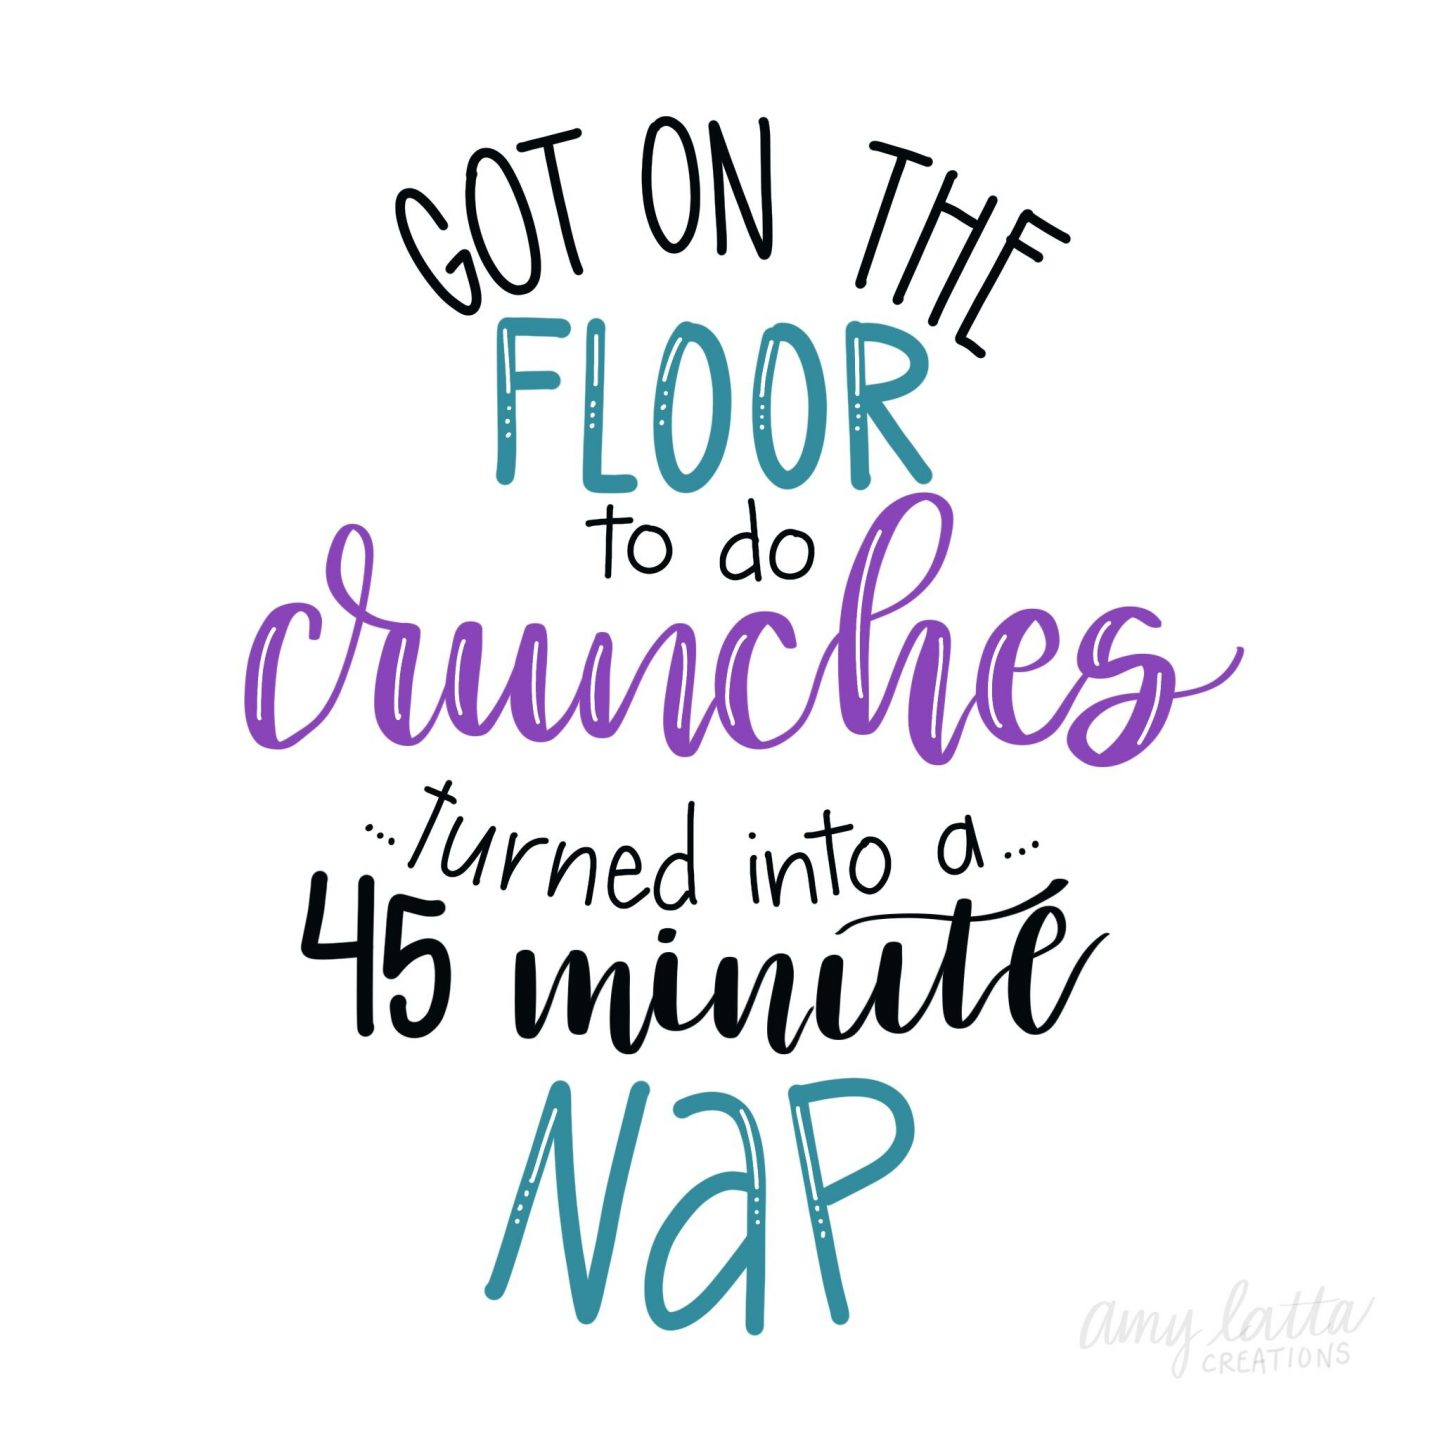 Funny quote about exercise with handlettering by Amy Latta. Come see more in 20 Hand Lettered Quotes, Big SMILES & Fun Finds! #funnyquote #humor #exercise #momhumor #handlettering #amylatta